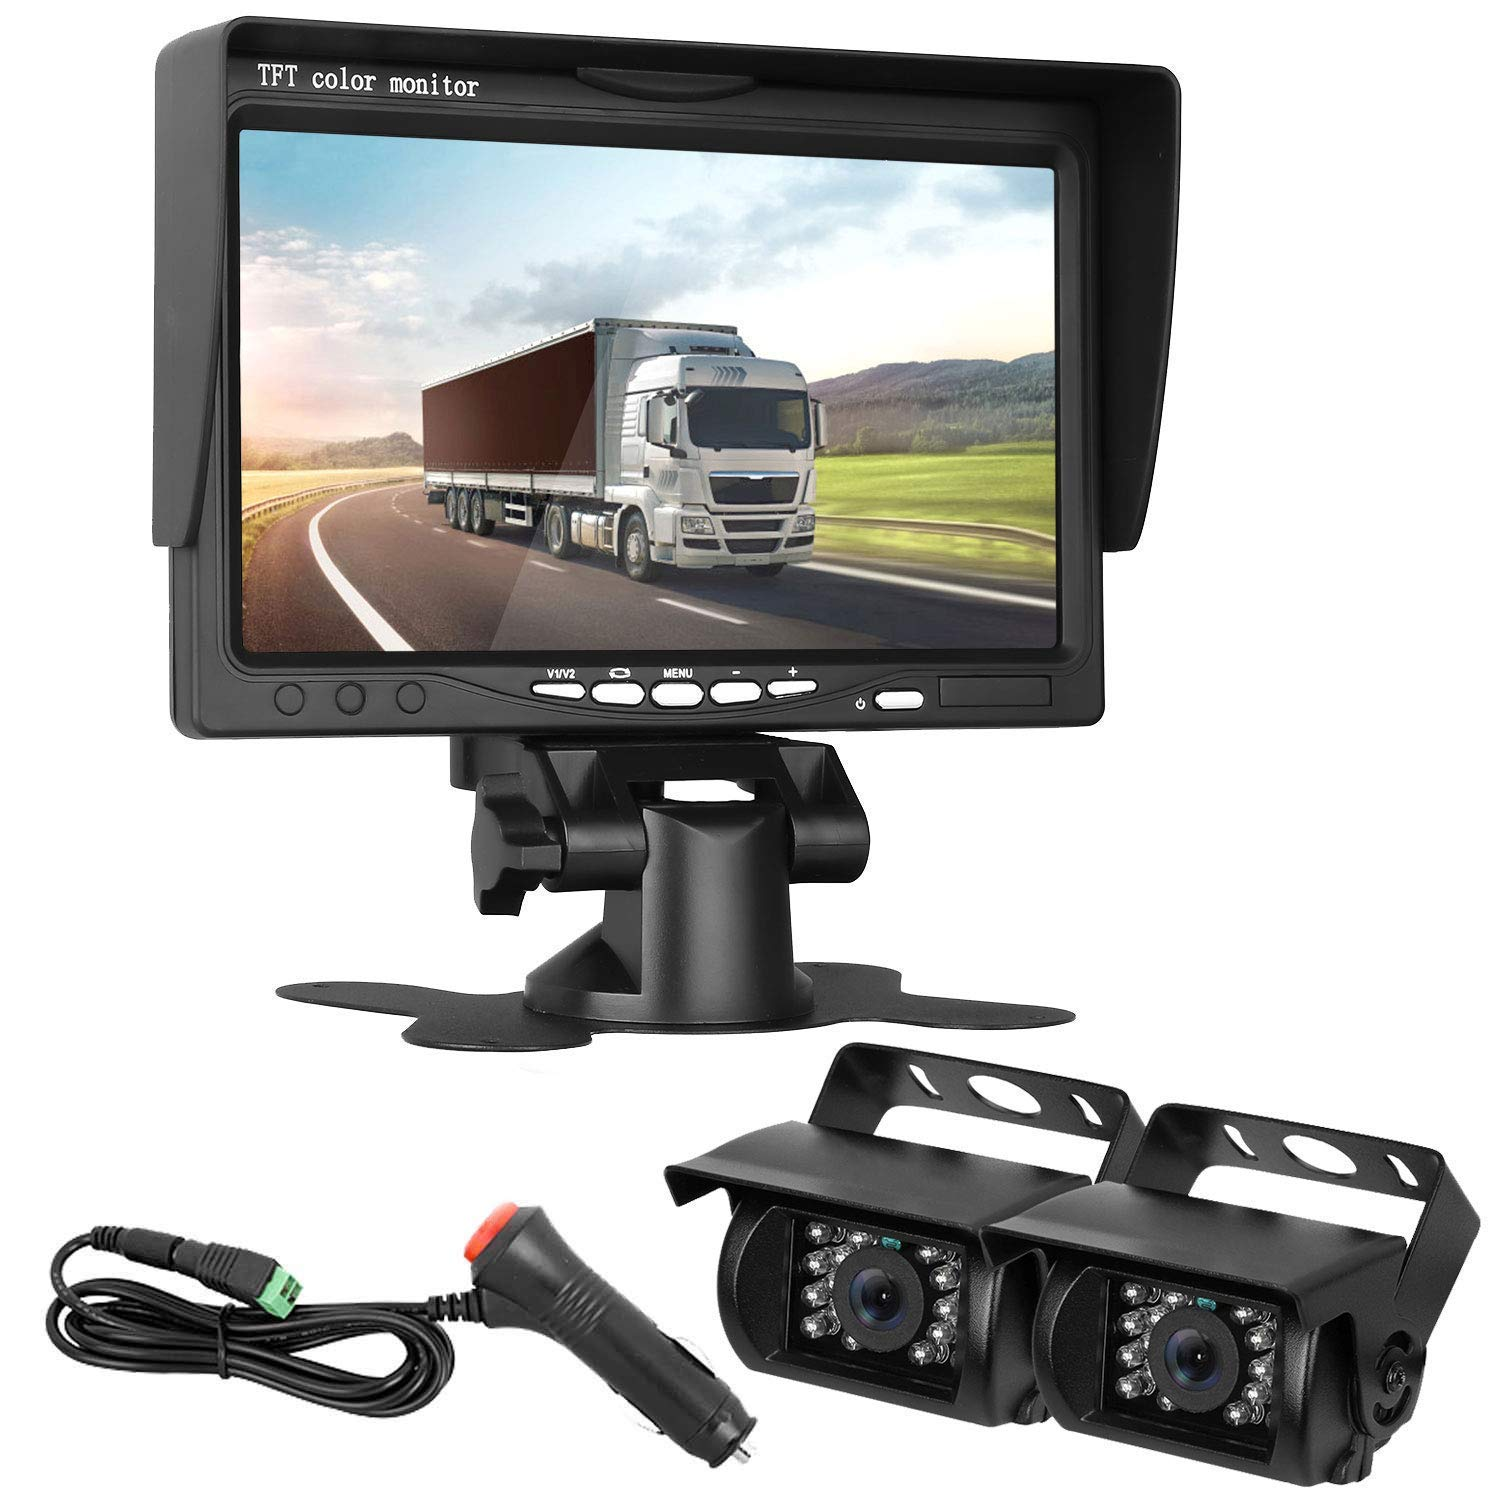 HD 720P Dual Backup Cameras and 7'' Monitor System Kit for Bus/Trucks/Trailer/RVs/Campers Night Vision IP68 Waterpoof with ON/Off Switch Guide Lines Normal/Mirrored Pictures Optional